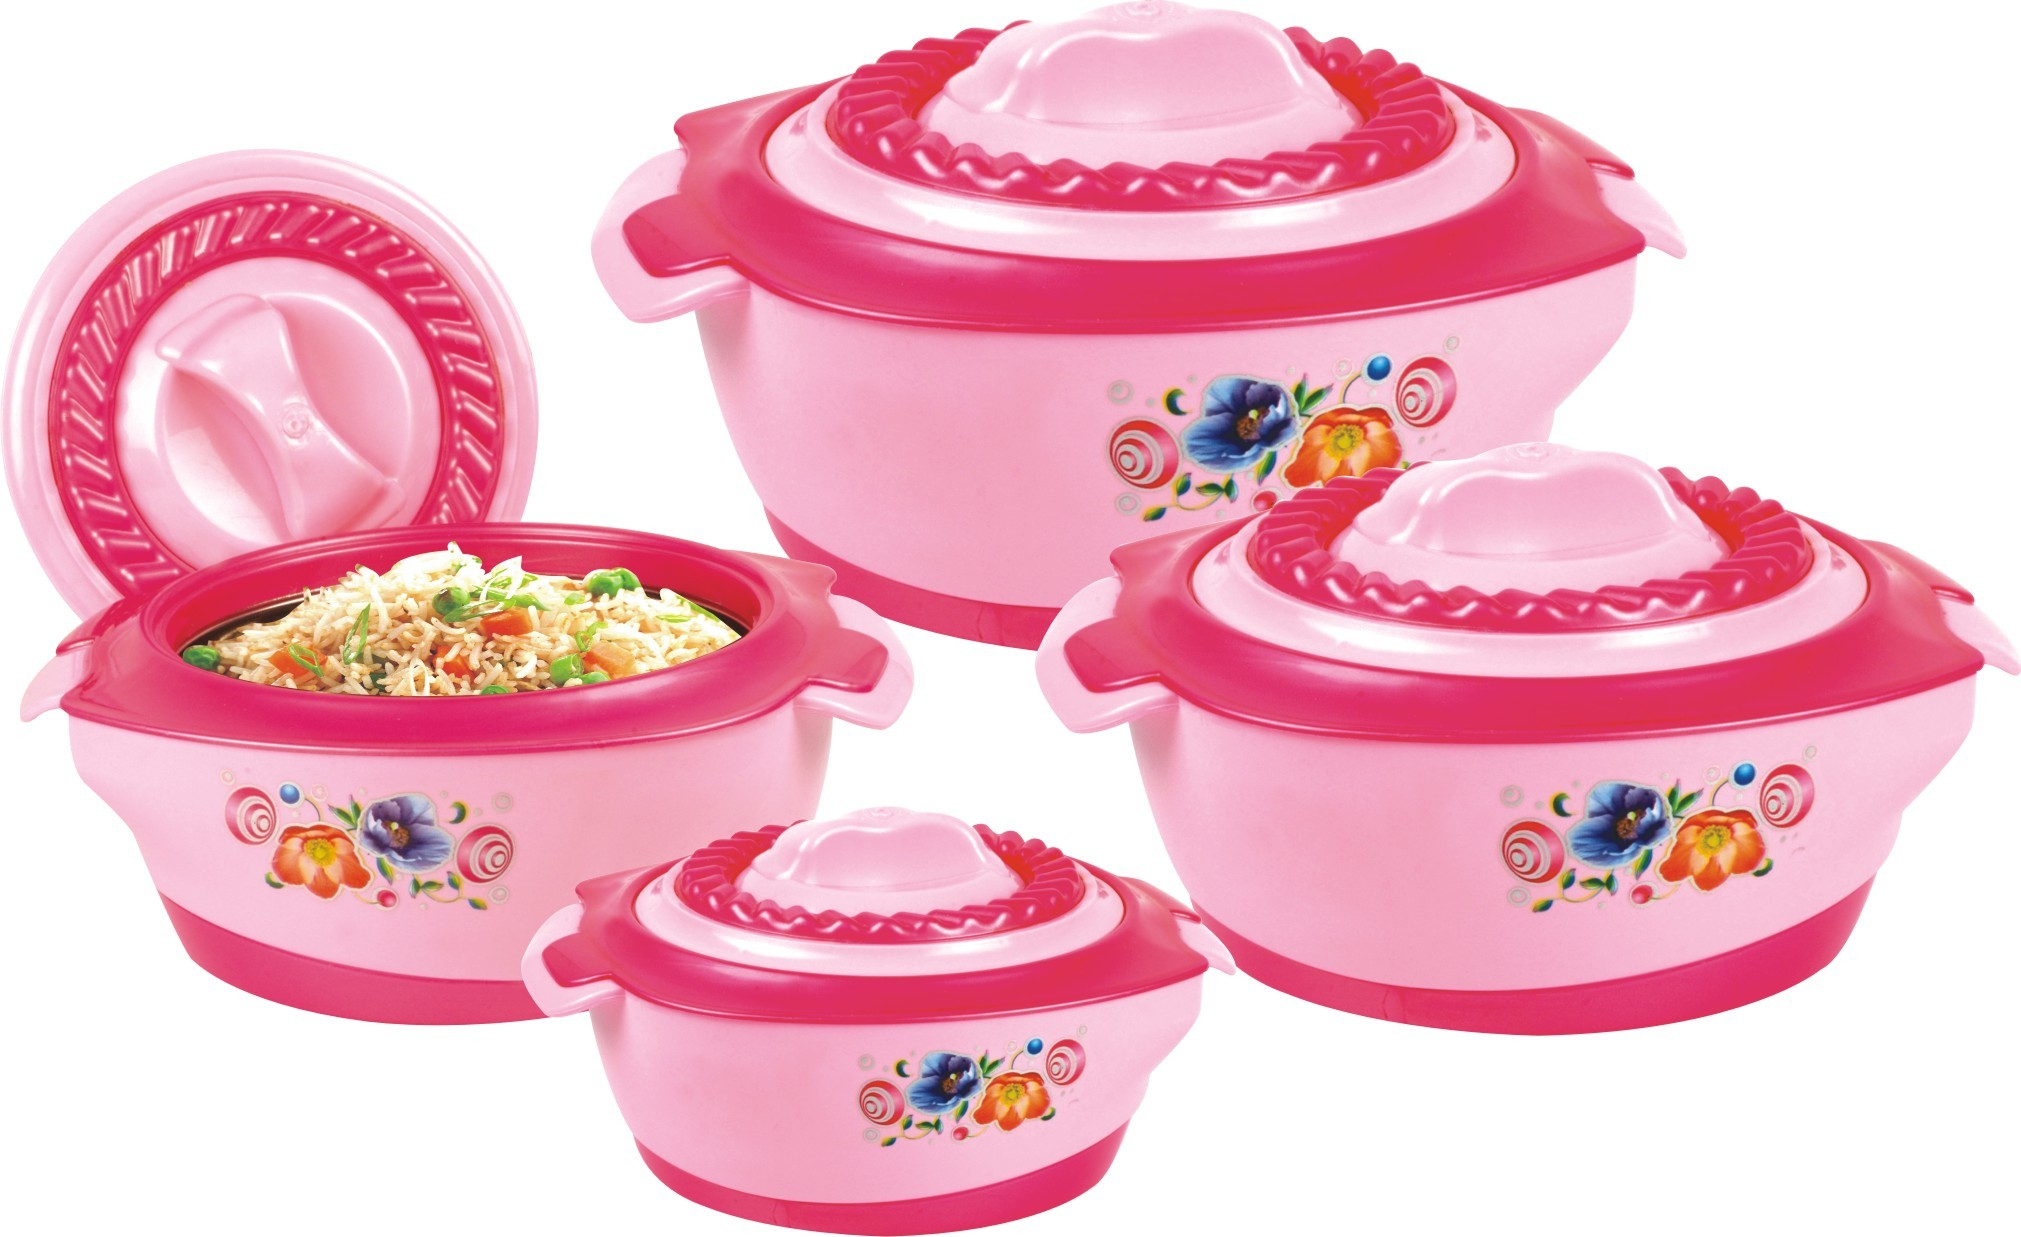 Riva 04 Piece Hot Pot Set